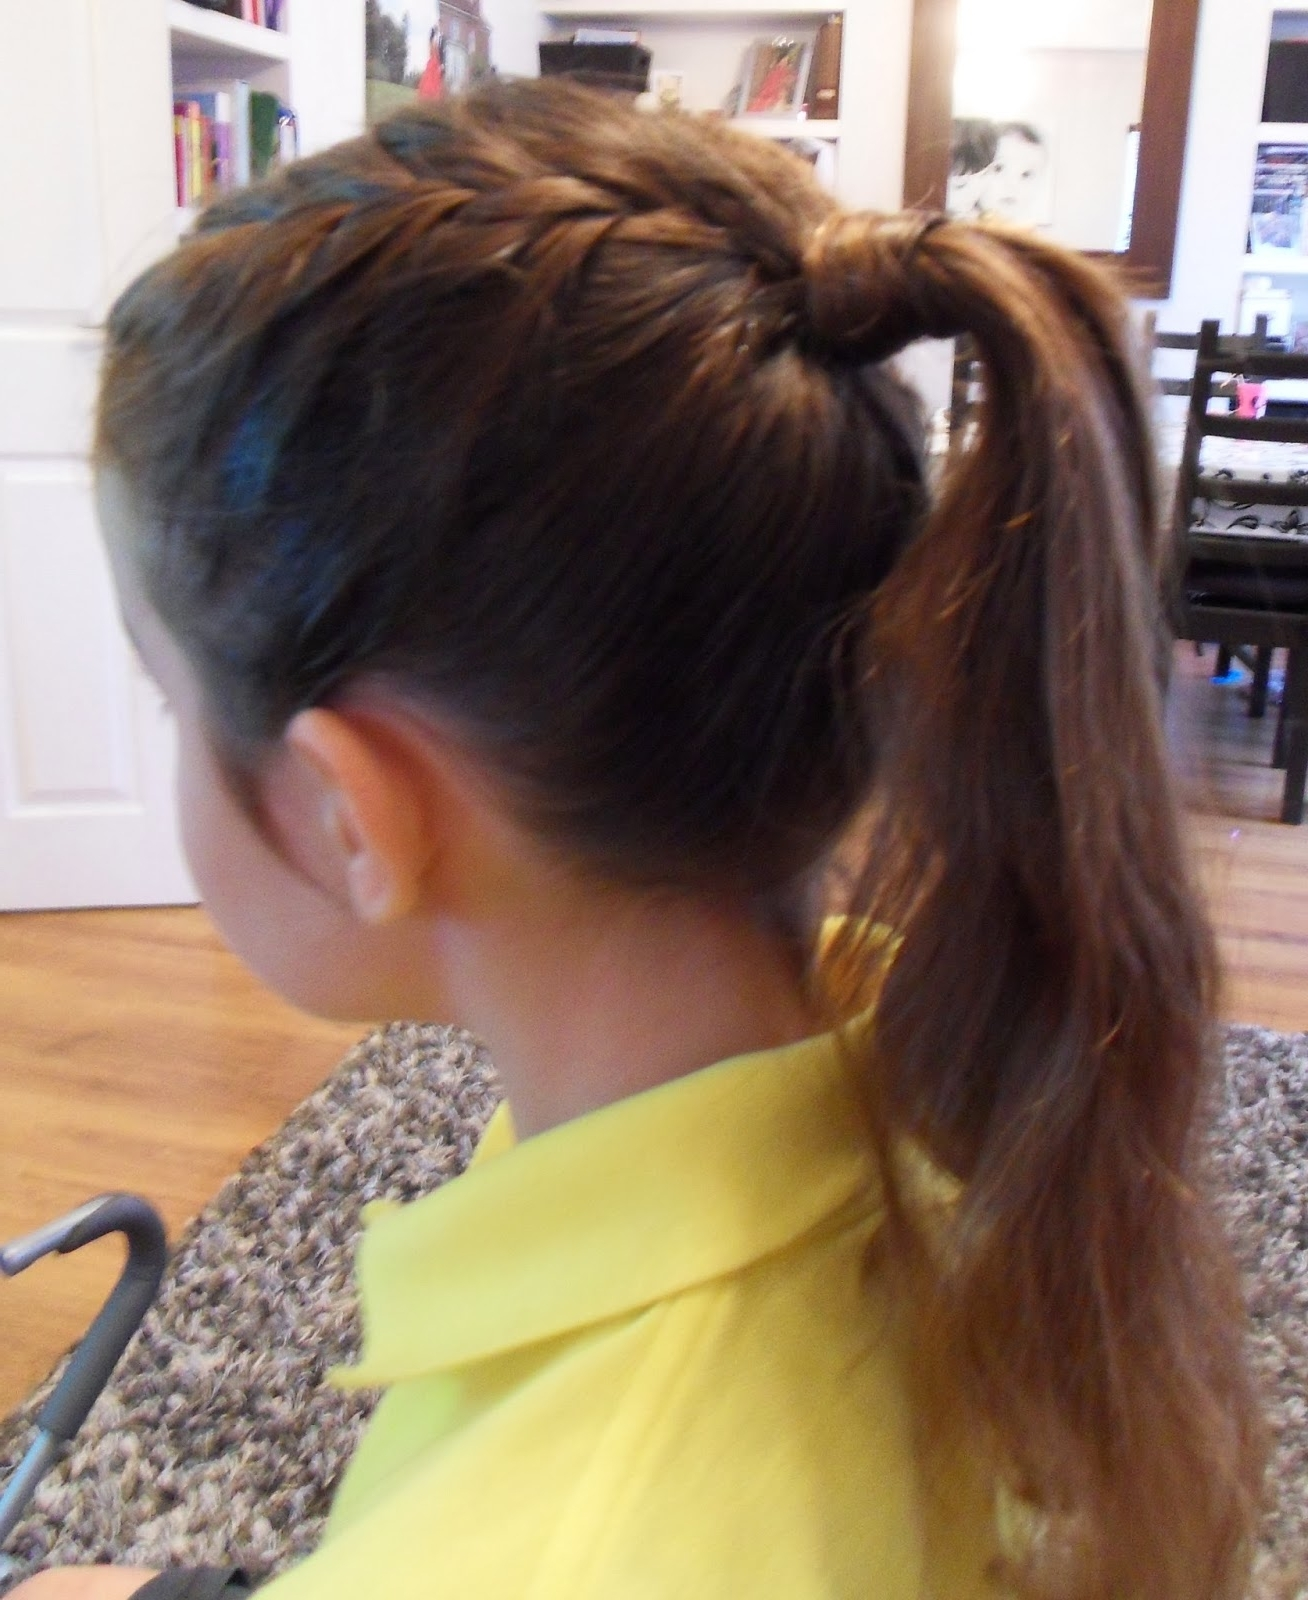 Yummy Mummy Survival: Girls Hairstyles – French Braid Into Pony Tail Inside Recent Braid Into Pony Hairstyles (View 20 of 20)